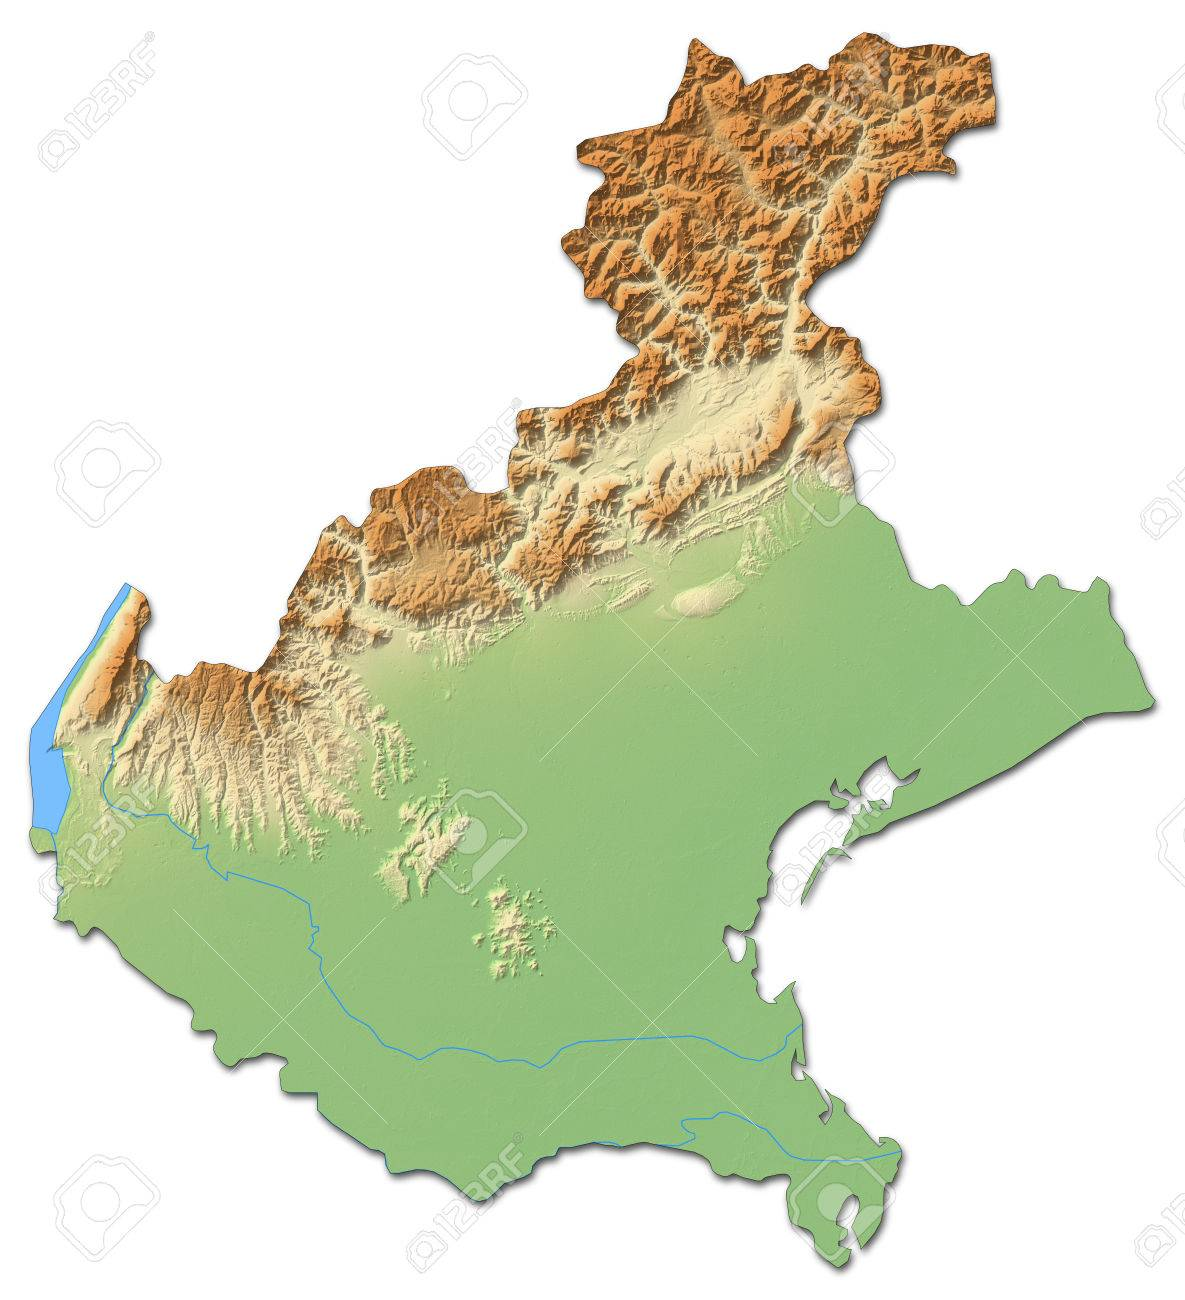 Relief map of Veneto, a province of Italy, with shaded relief. - 63798000